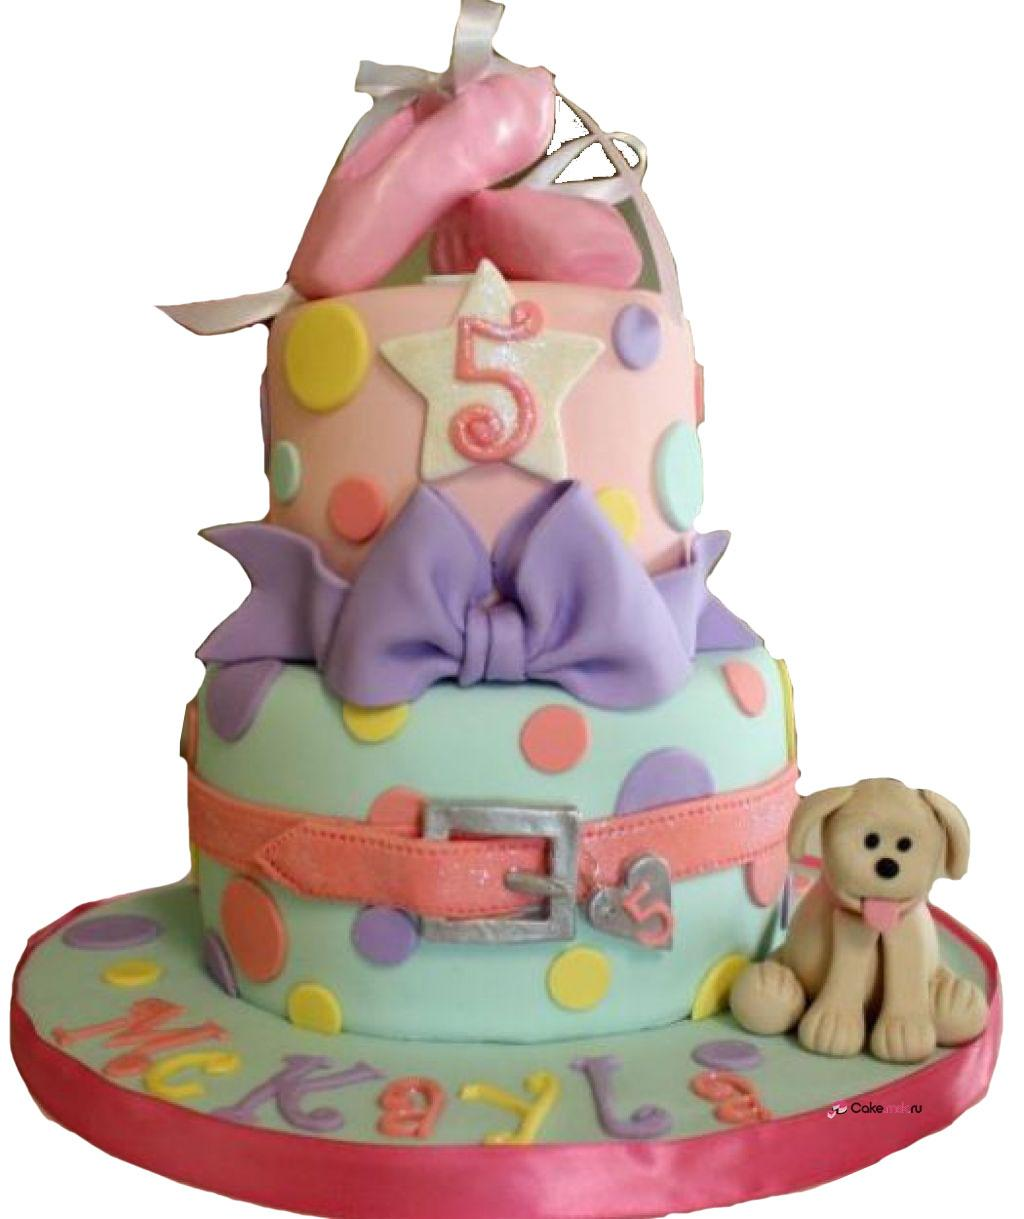 5-year-old-girl-birthday-cake-55499f7643bc8